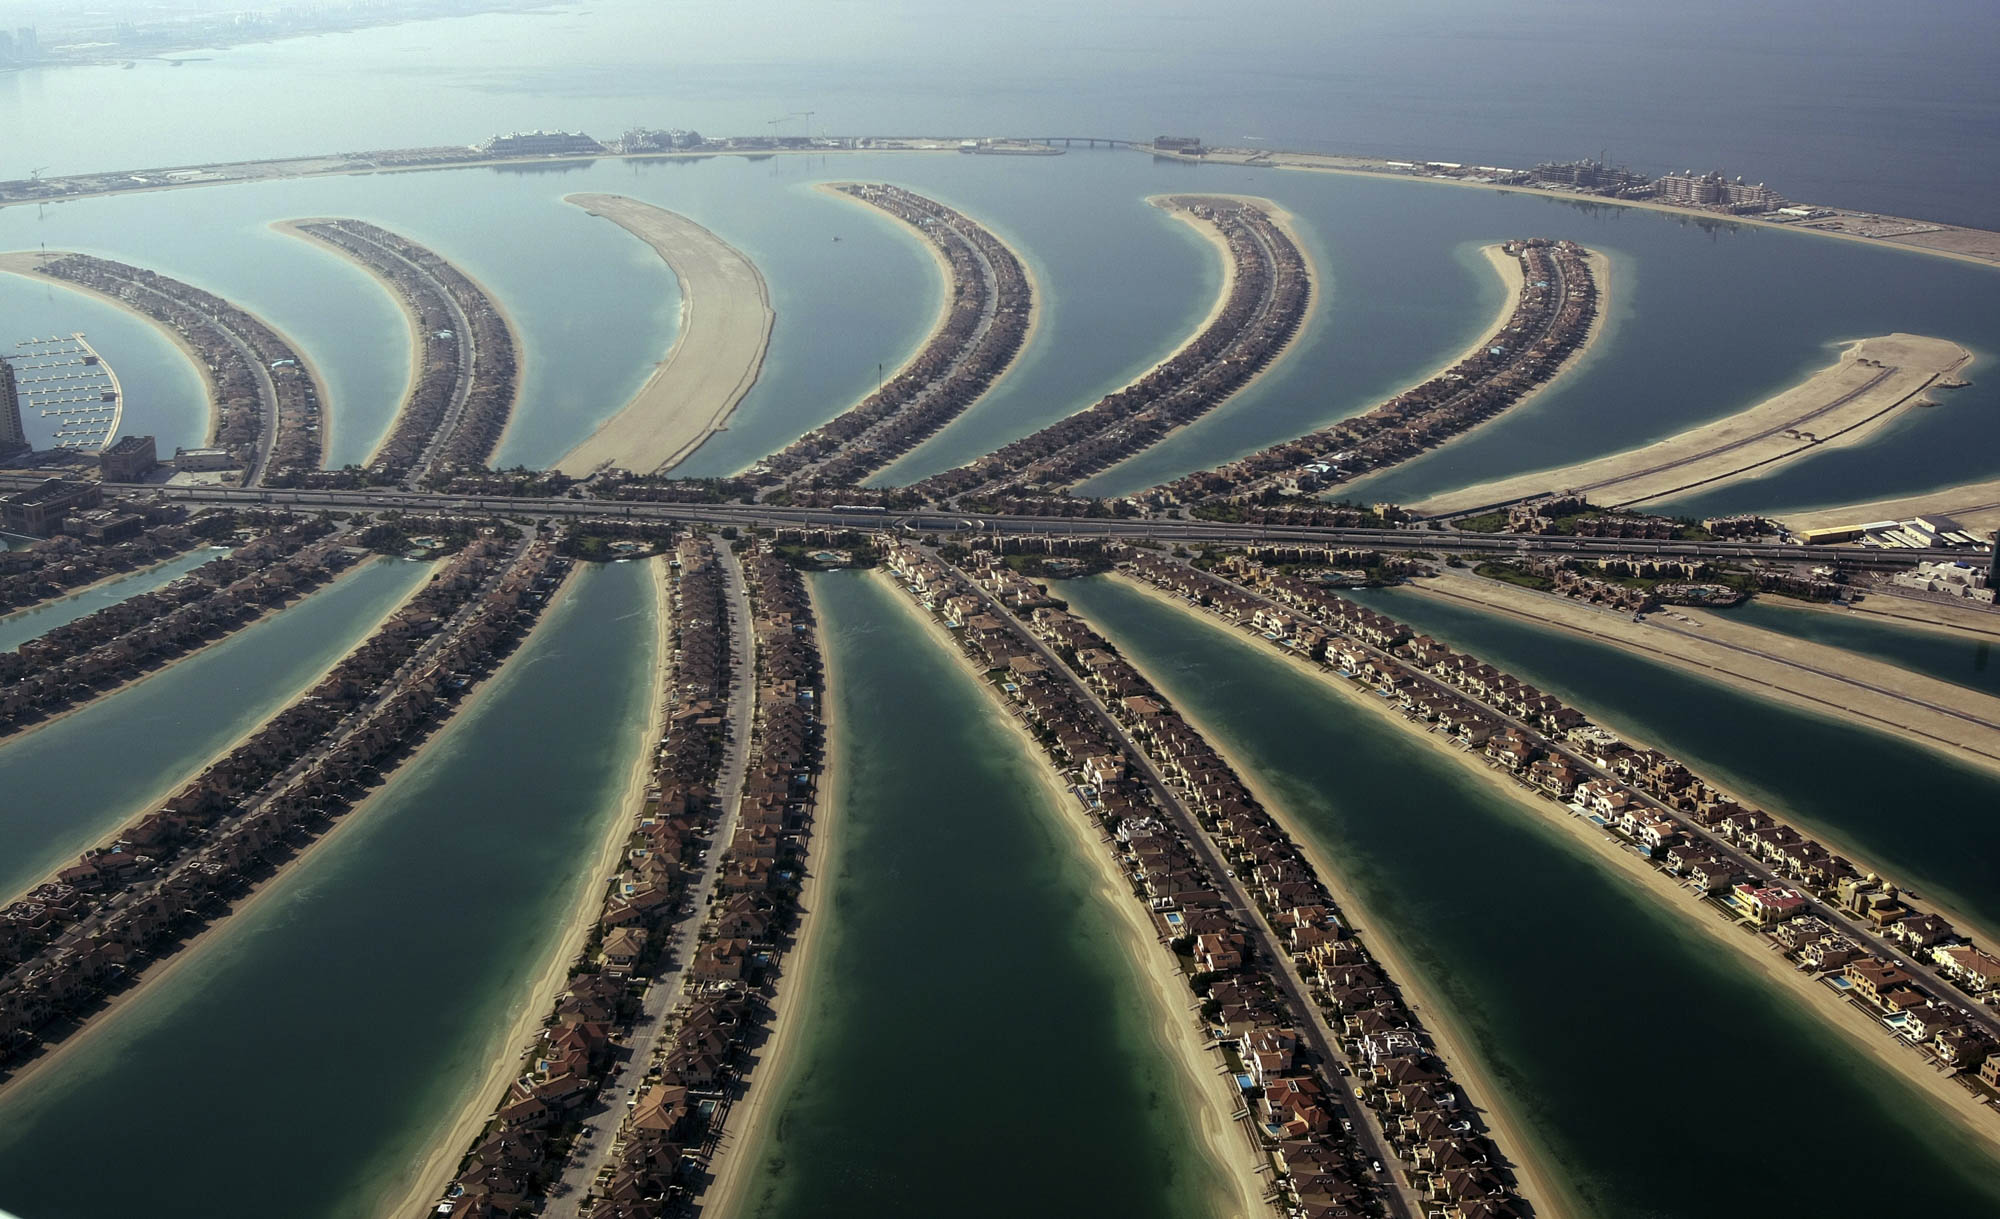 bloomberg.com - Zainab Fattah - A Haven for Money in the Middle East, Dubai Is Losing Its Shine